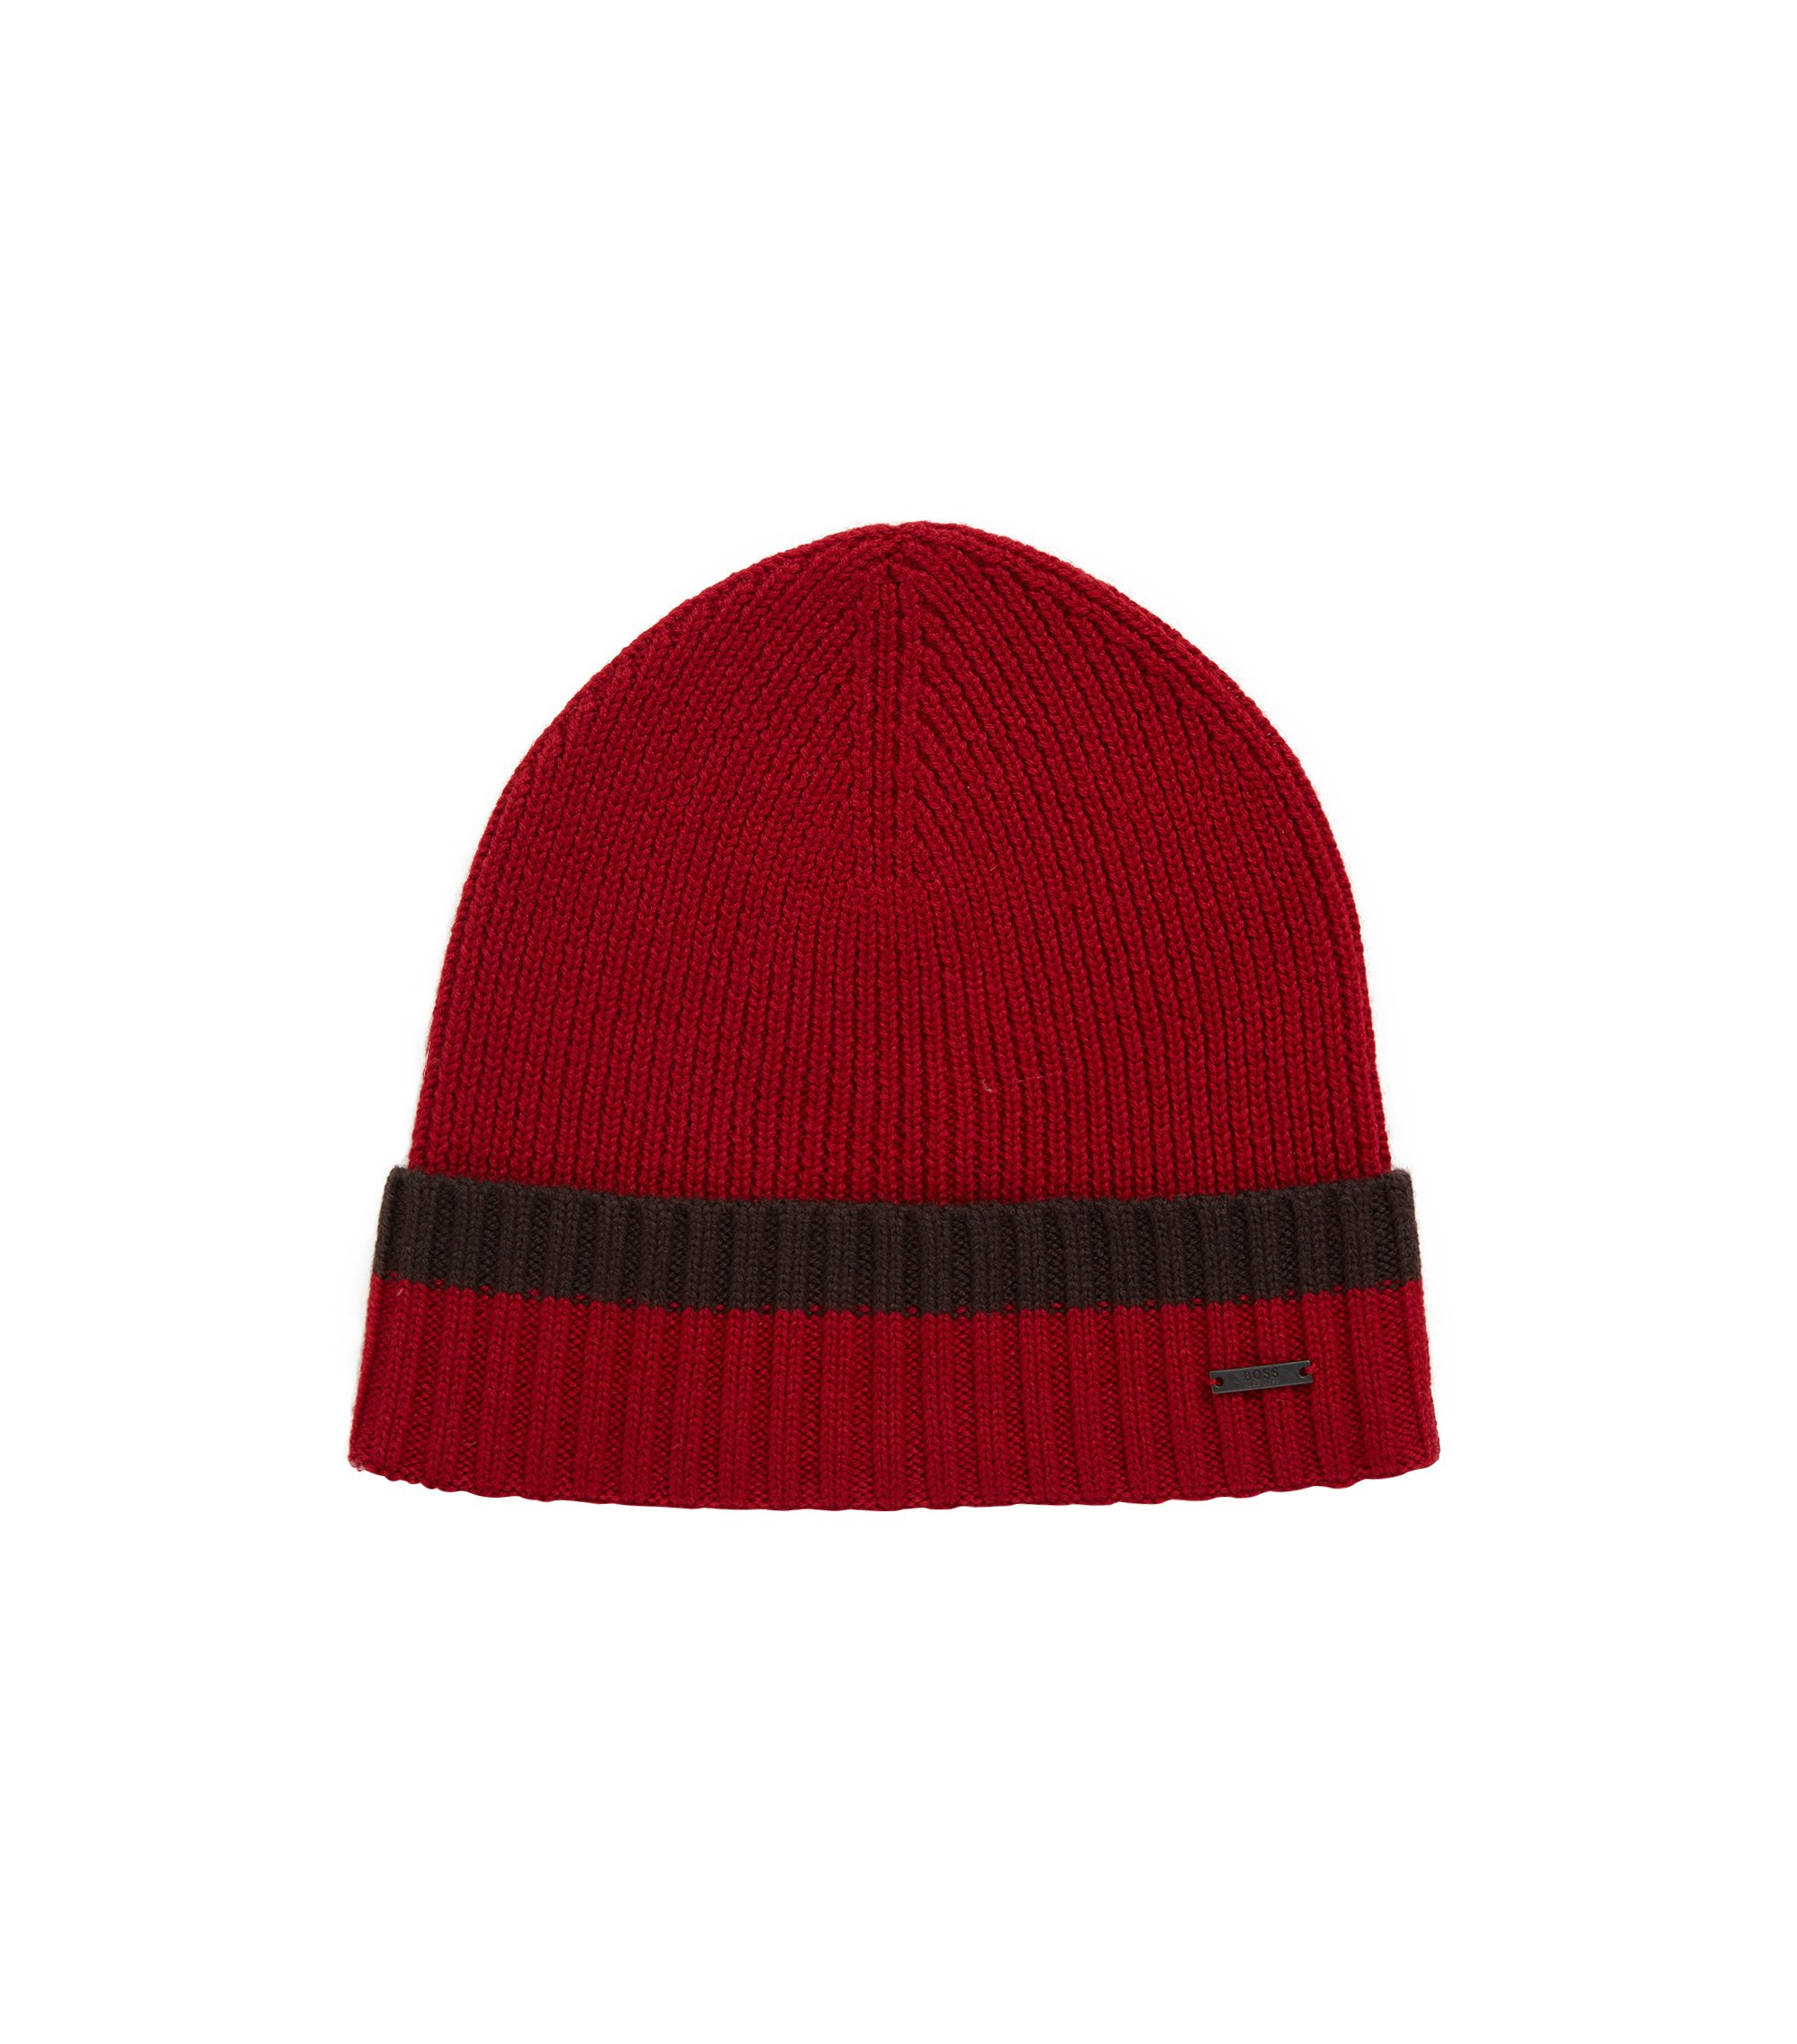 Beanie hat in virgin wool with contrast turn-up, Dark Red